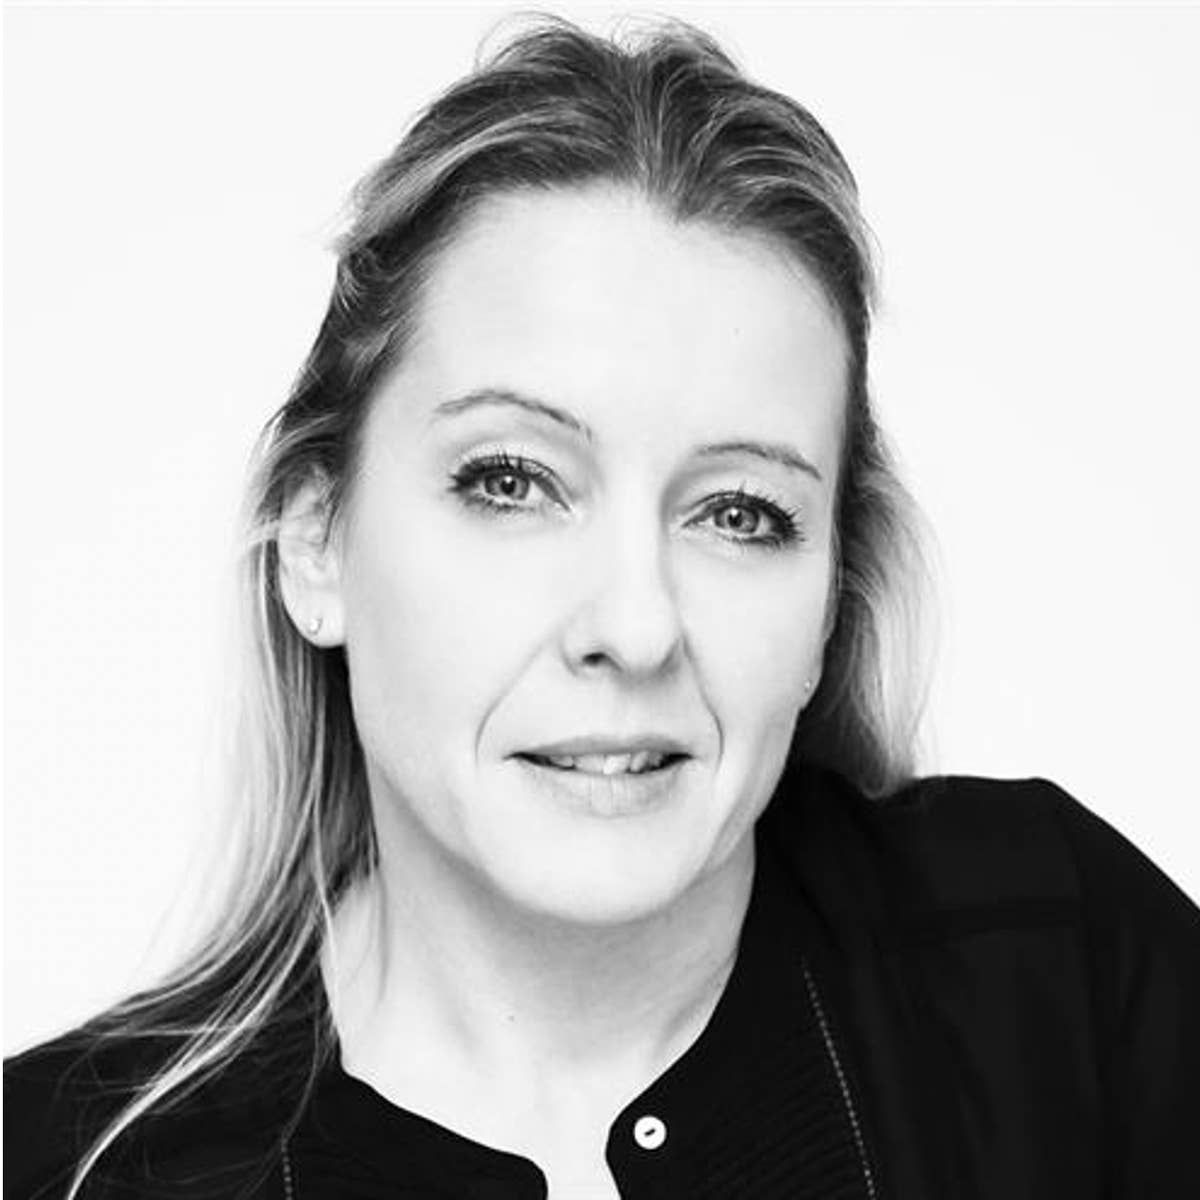 Profile photo of Anna Campbell, Global Client President at Carat